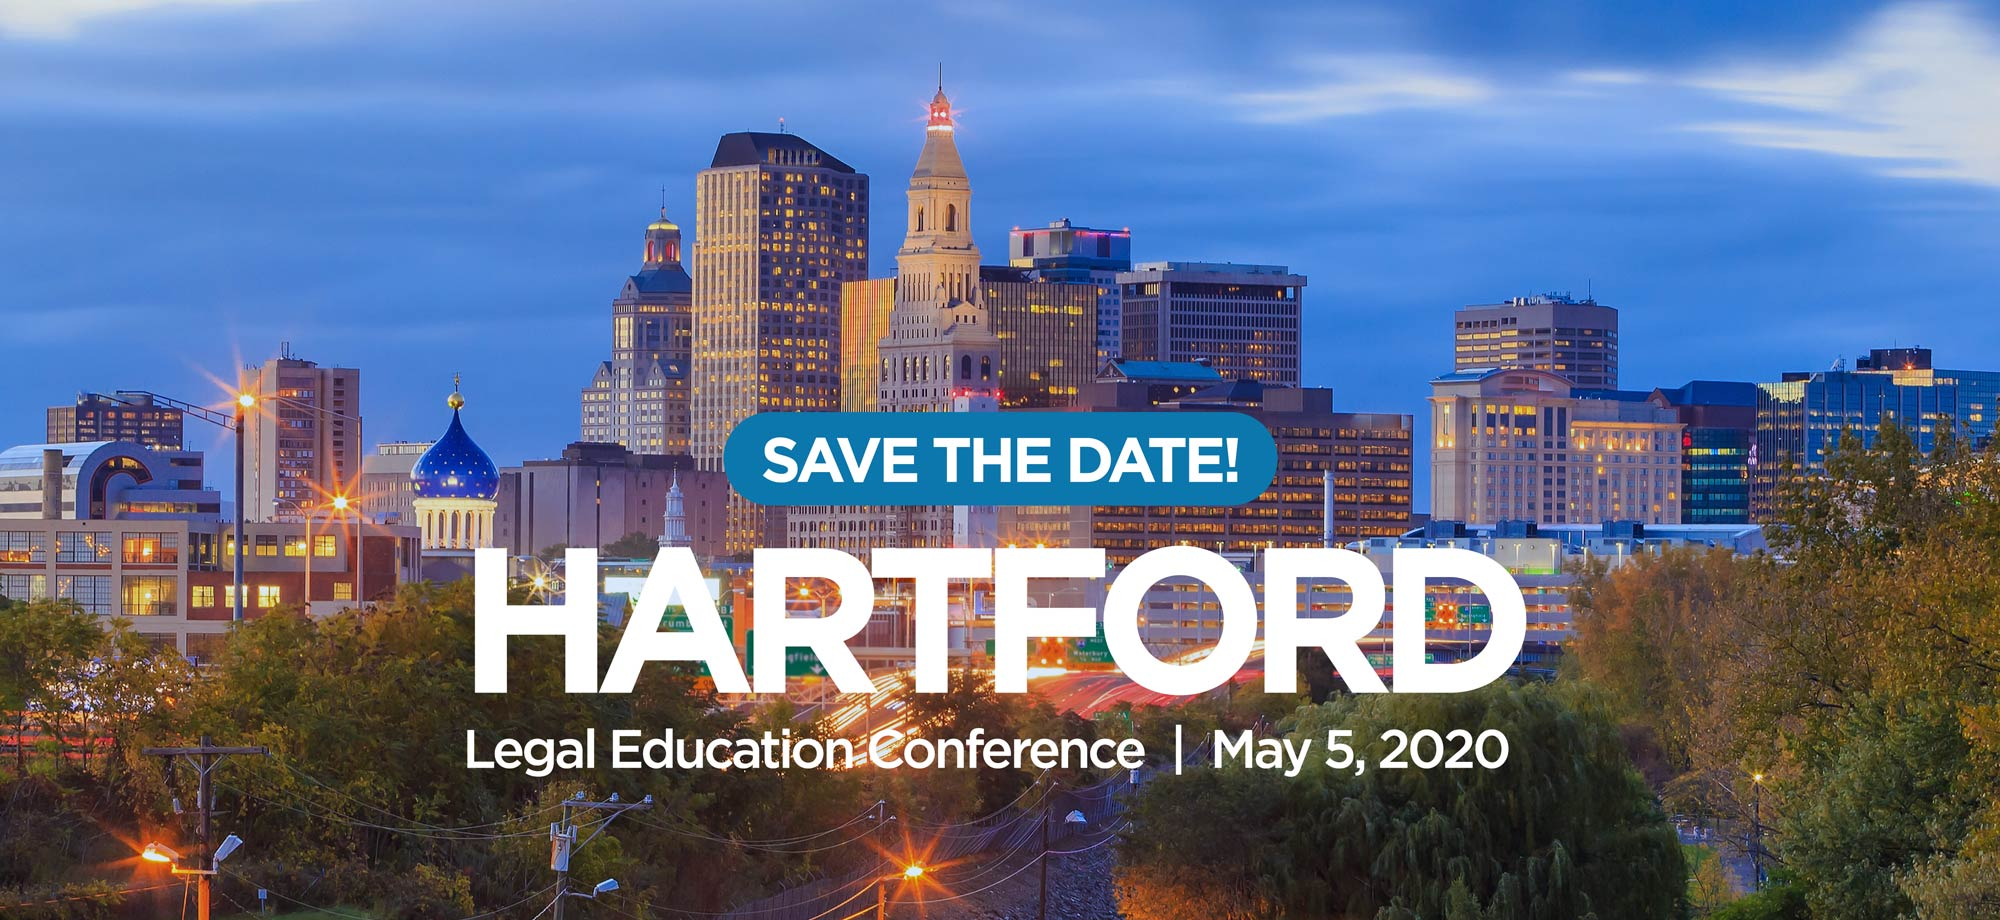 2020 Gordon & Rees Legal Education Conference - Hartford